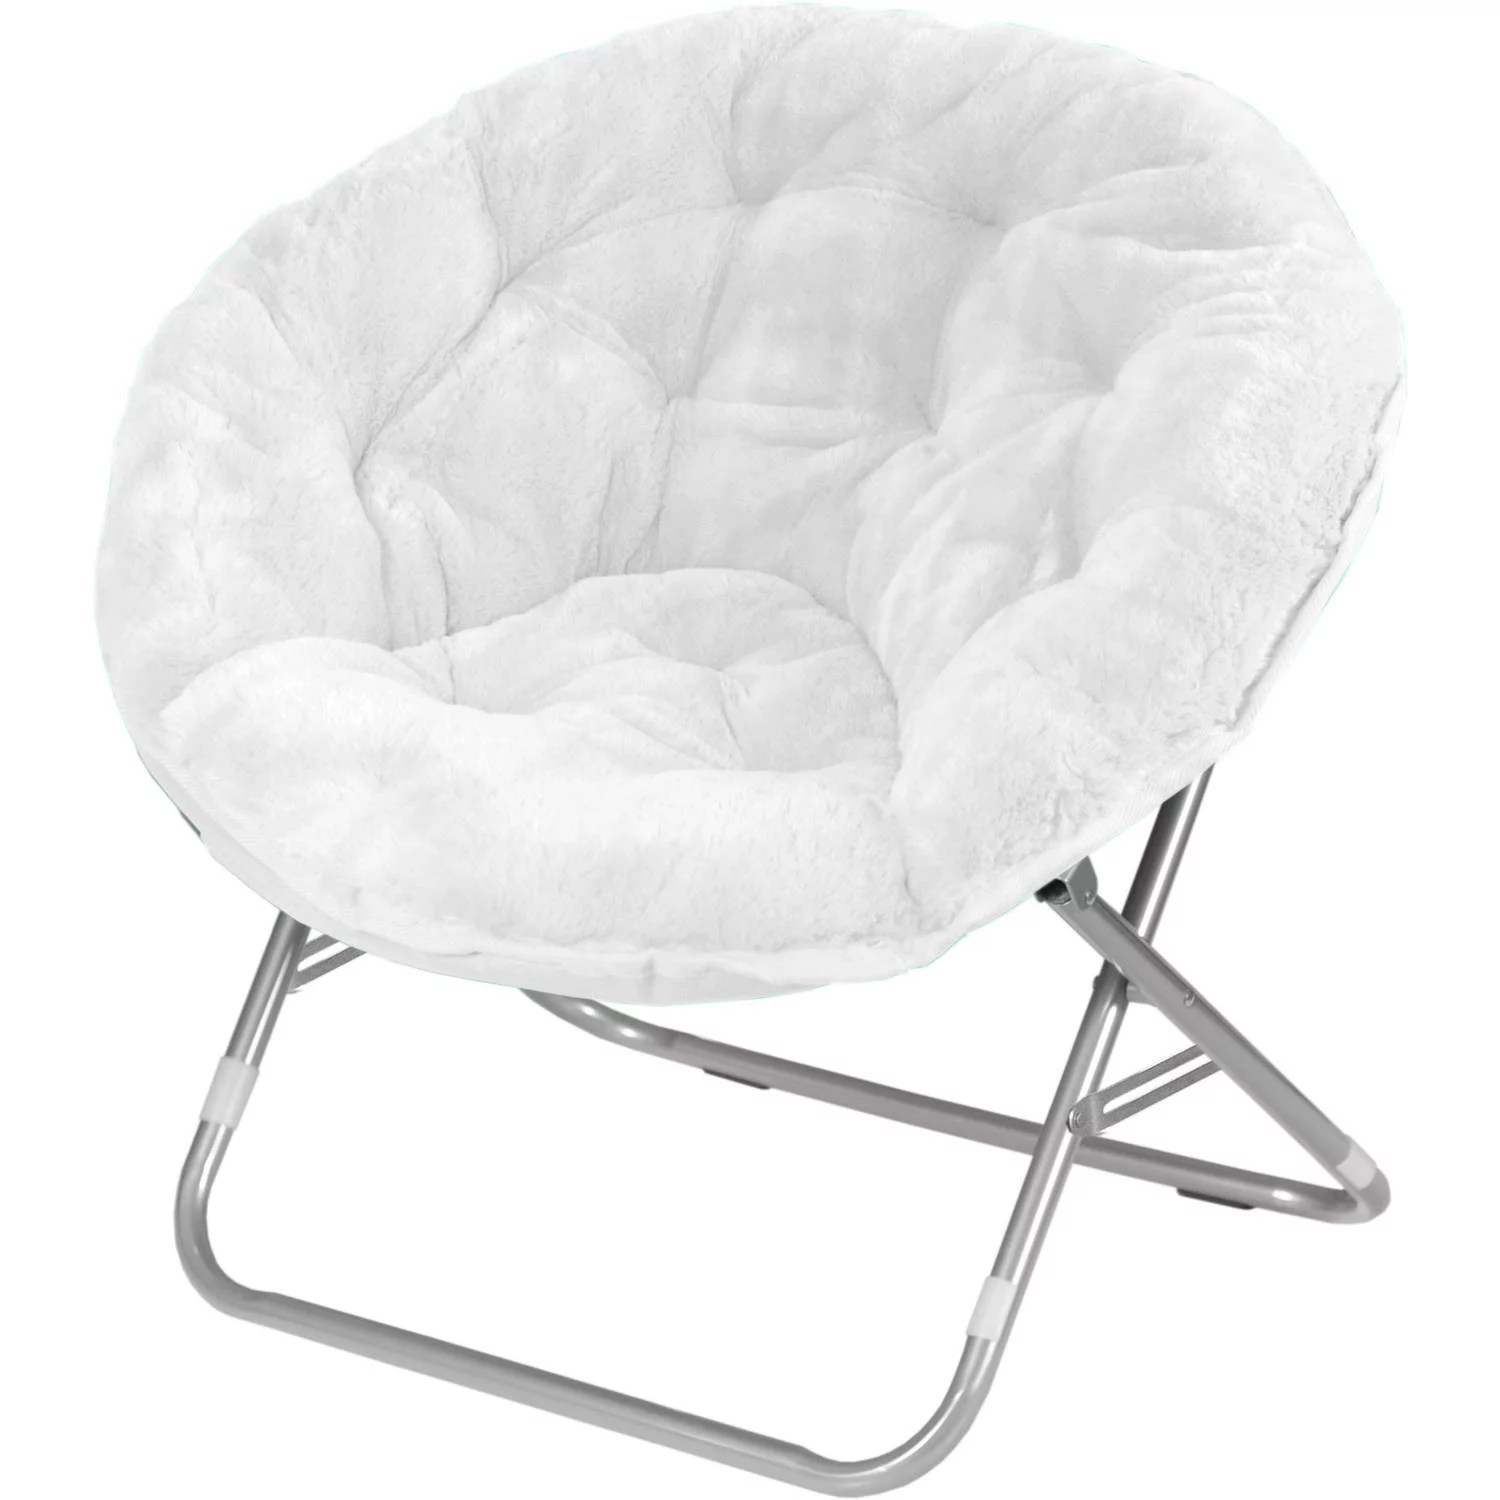 Plush Chairs Mainstays Faux Fur Saucer Chair Available In Multiple Colors